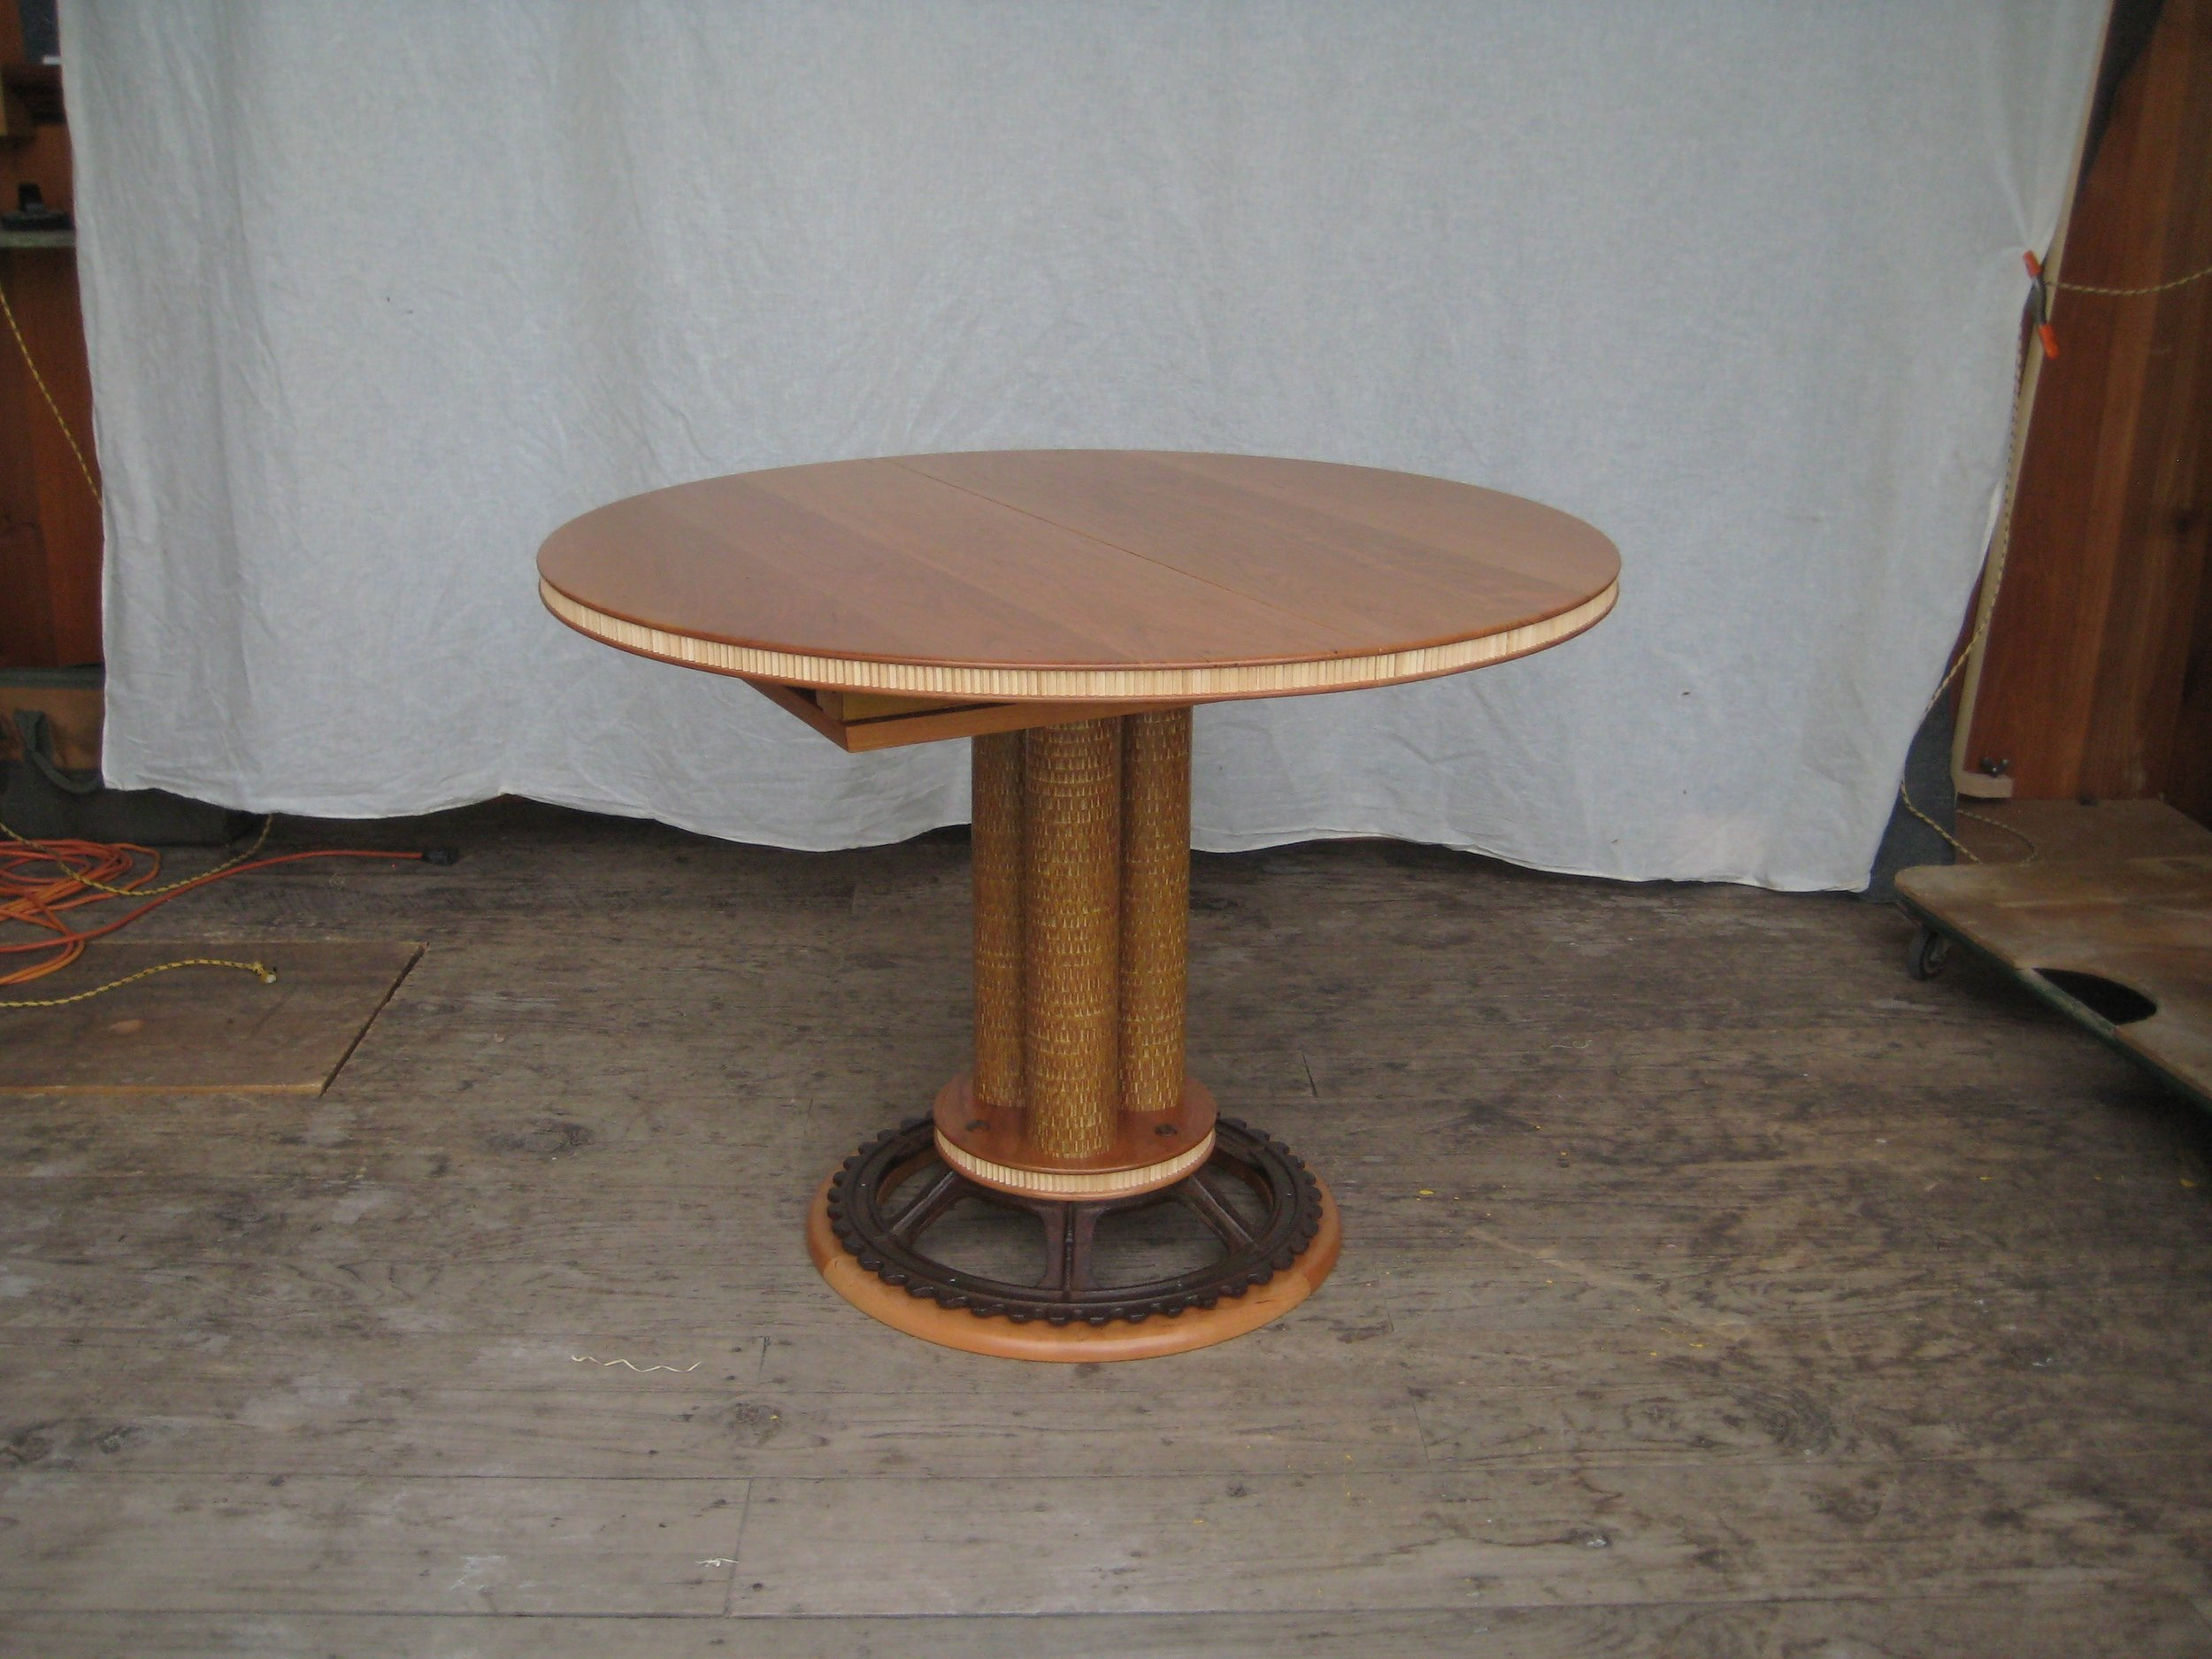 extension-table-schwartzman-005.jpg